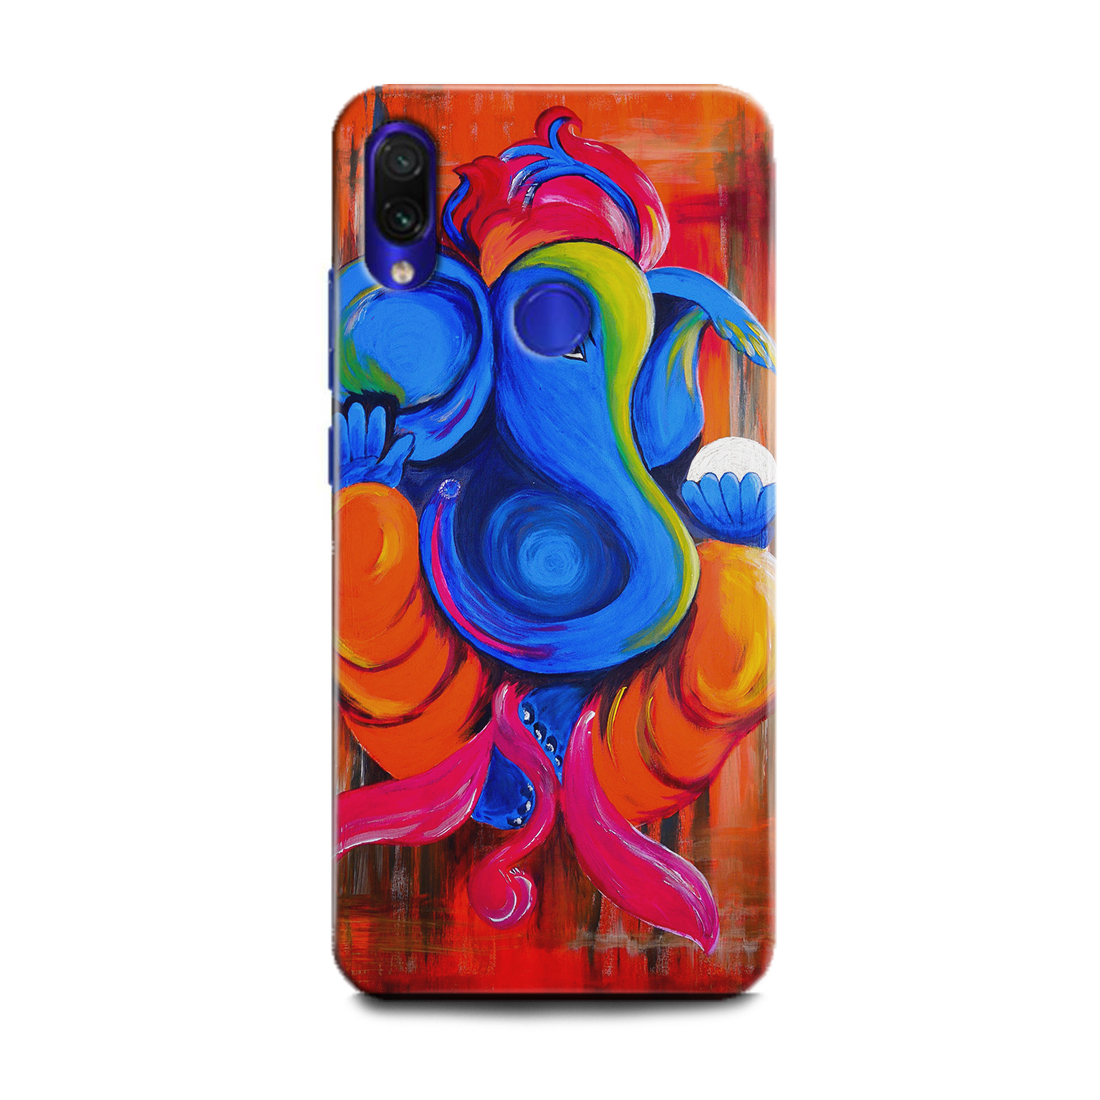 INDICRAFT Mobile Back Cover For Mi Redmi Note 7 Pro / Hard Case (Ganesh Ji, Ganpatti, GOD, Lord Ganesha, Bhagwan, GOD of GOD, Temple, MZB7464IN) (AB-Note7Pro-0727)